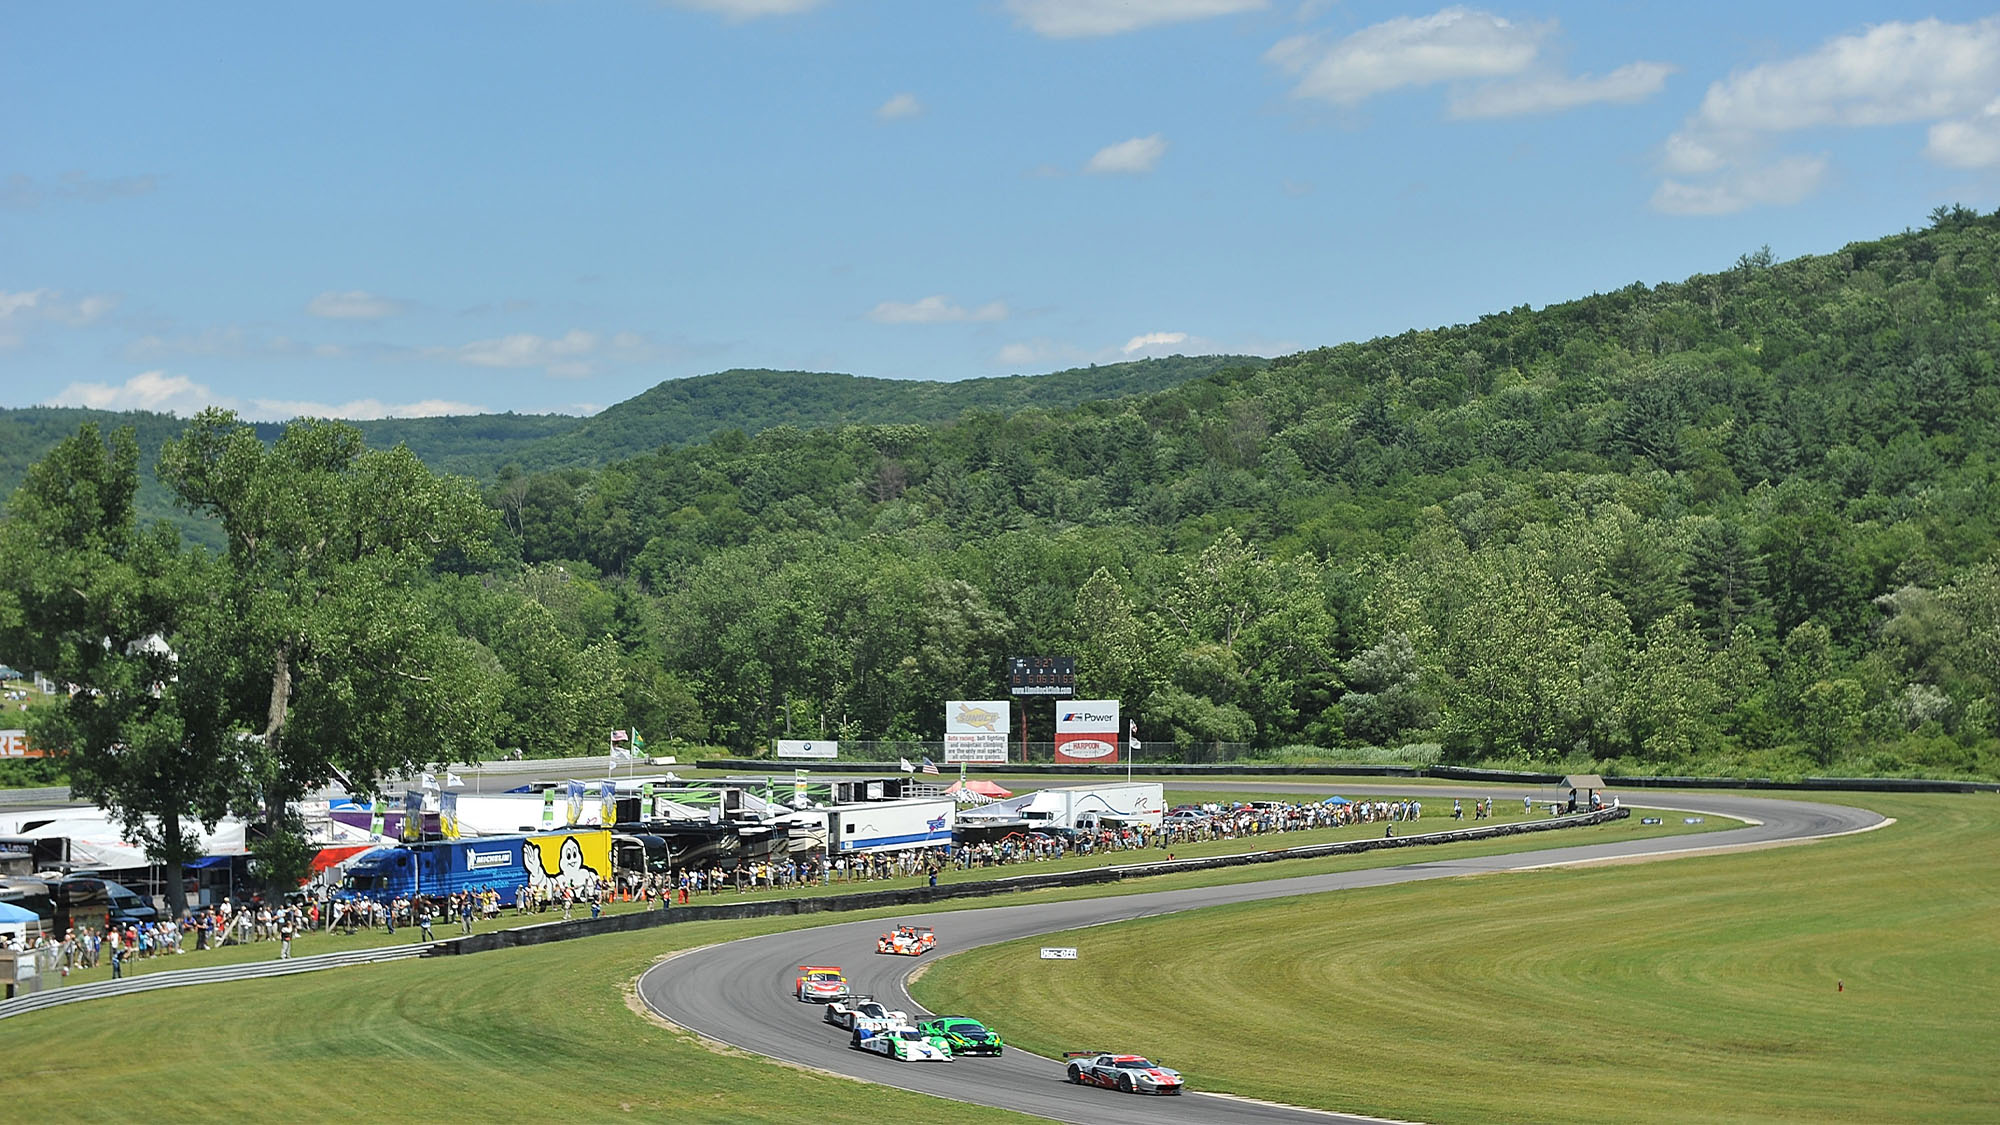 LAKEVILLE, CT - JULY 09: Scenic overview of Lime Rock Park during the American LeMans Northeast Grand Prix at Lime Rock Park on July 9, 2011 in Lakeville, Connecticut. (Photo by Rick Dole/Getty Images)